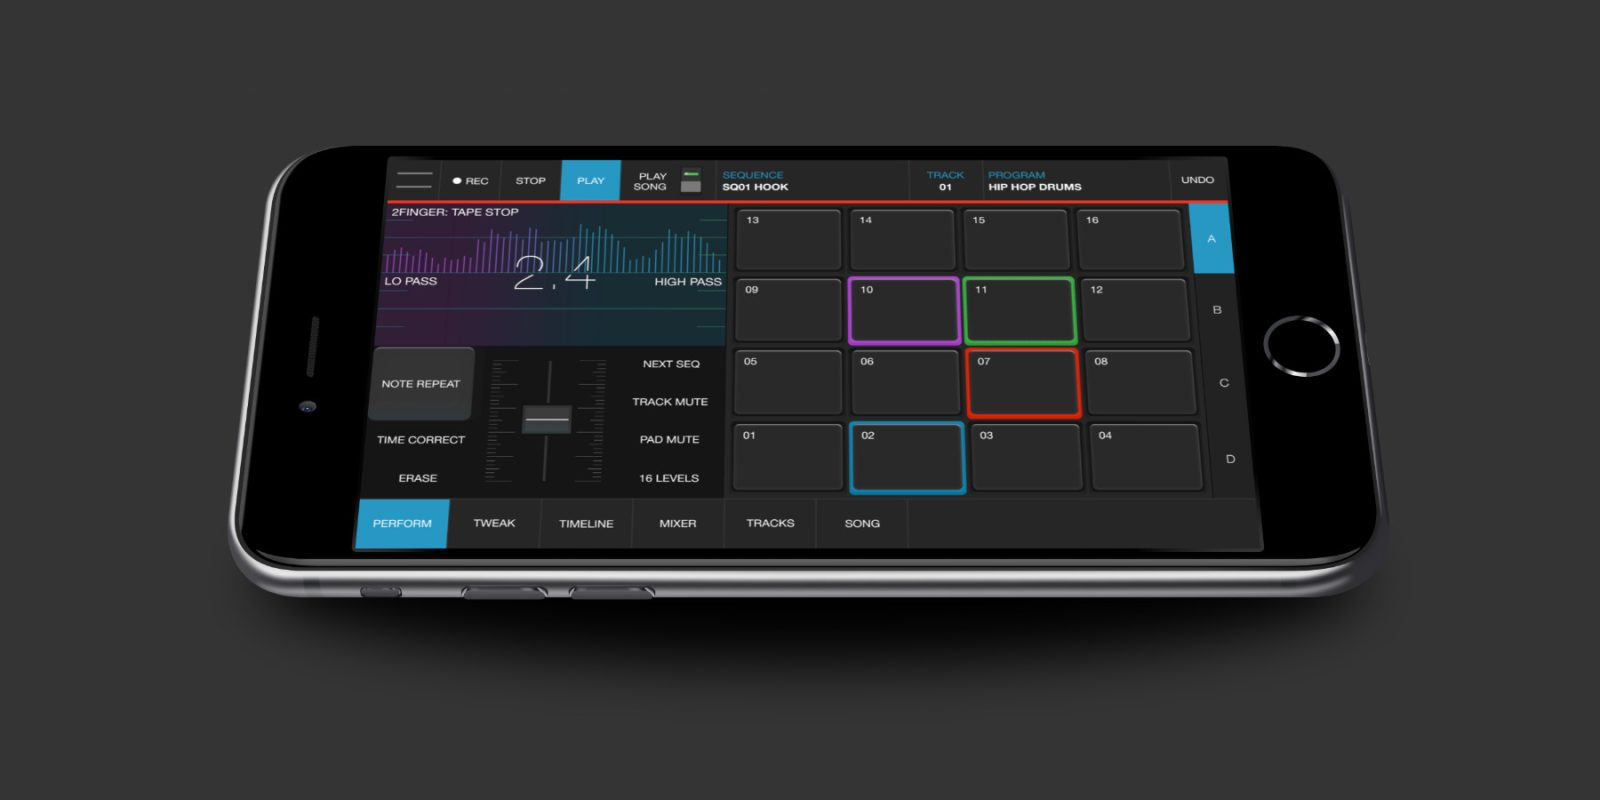 Akai's iMPC Pro 2 production app for iOS at nearly 50% off